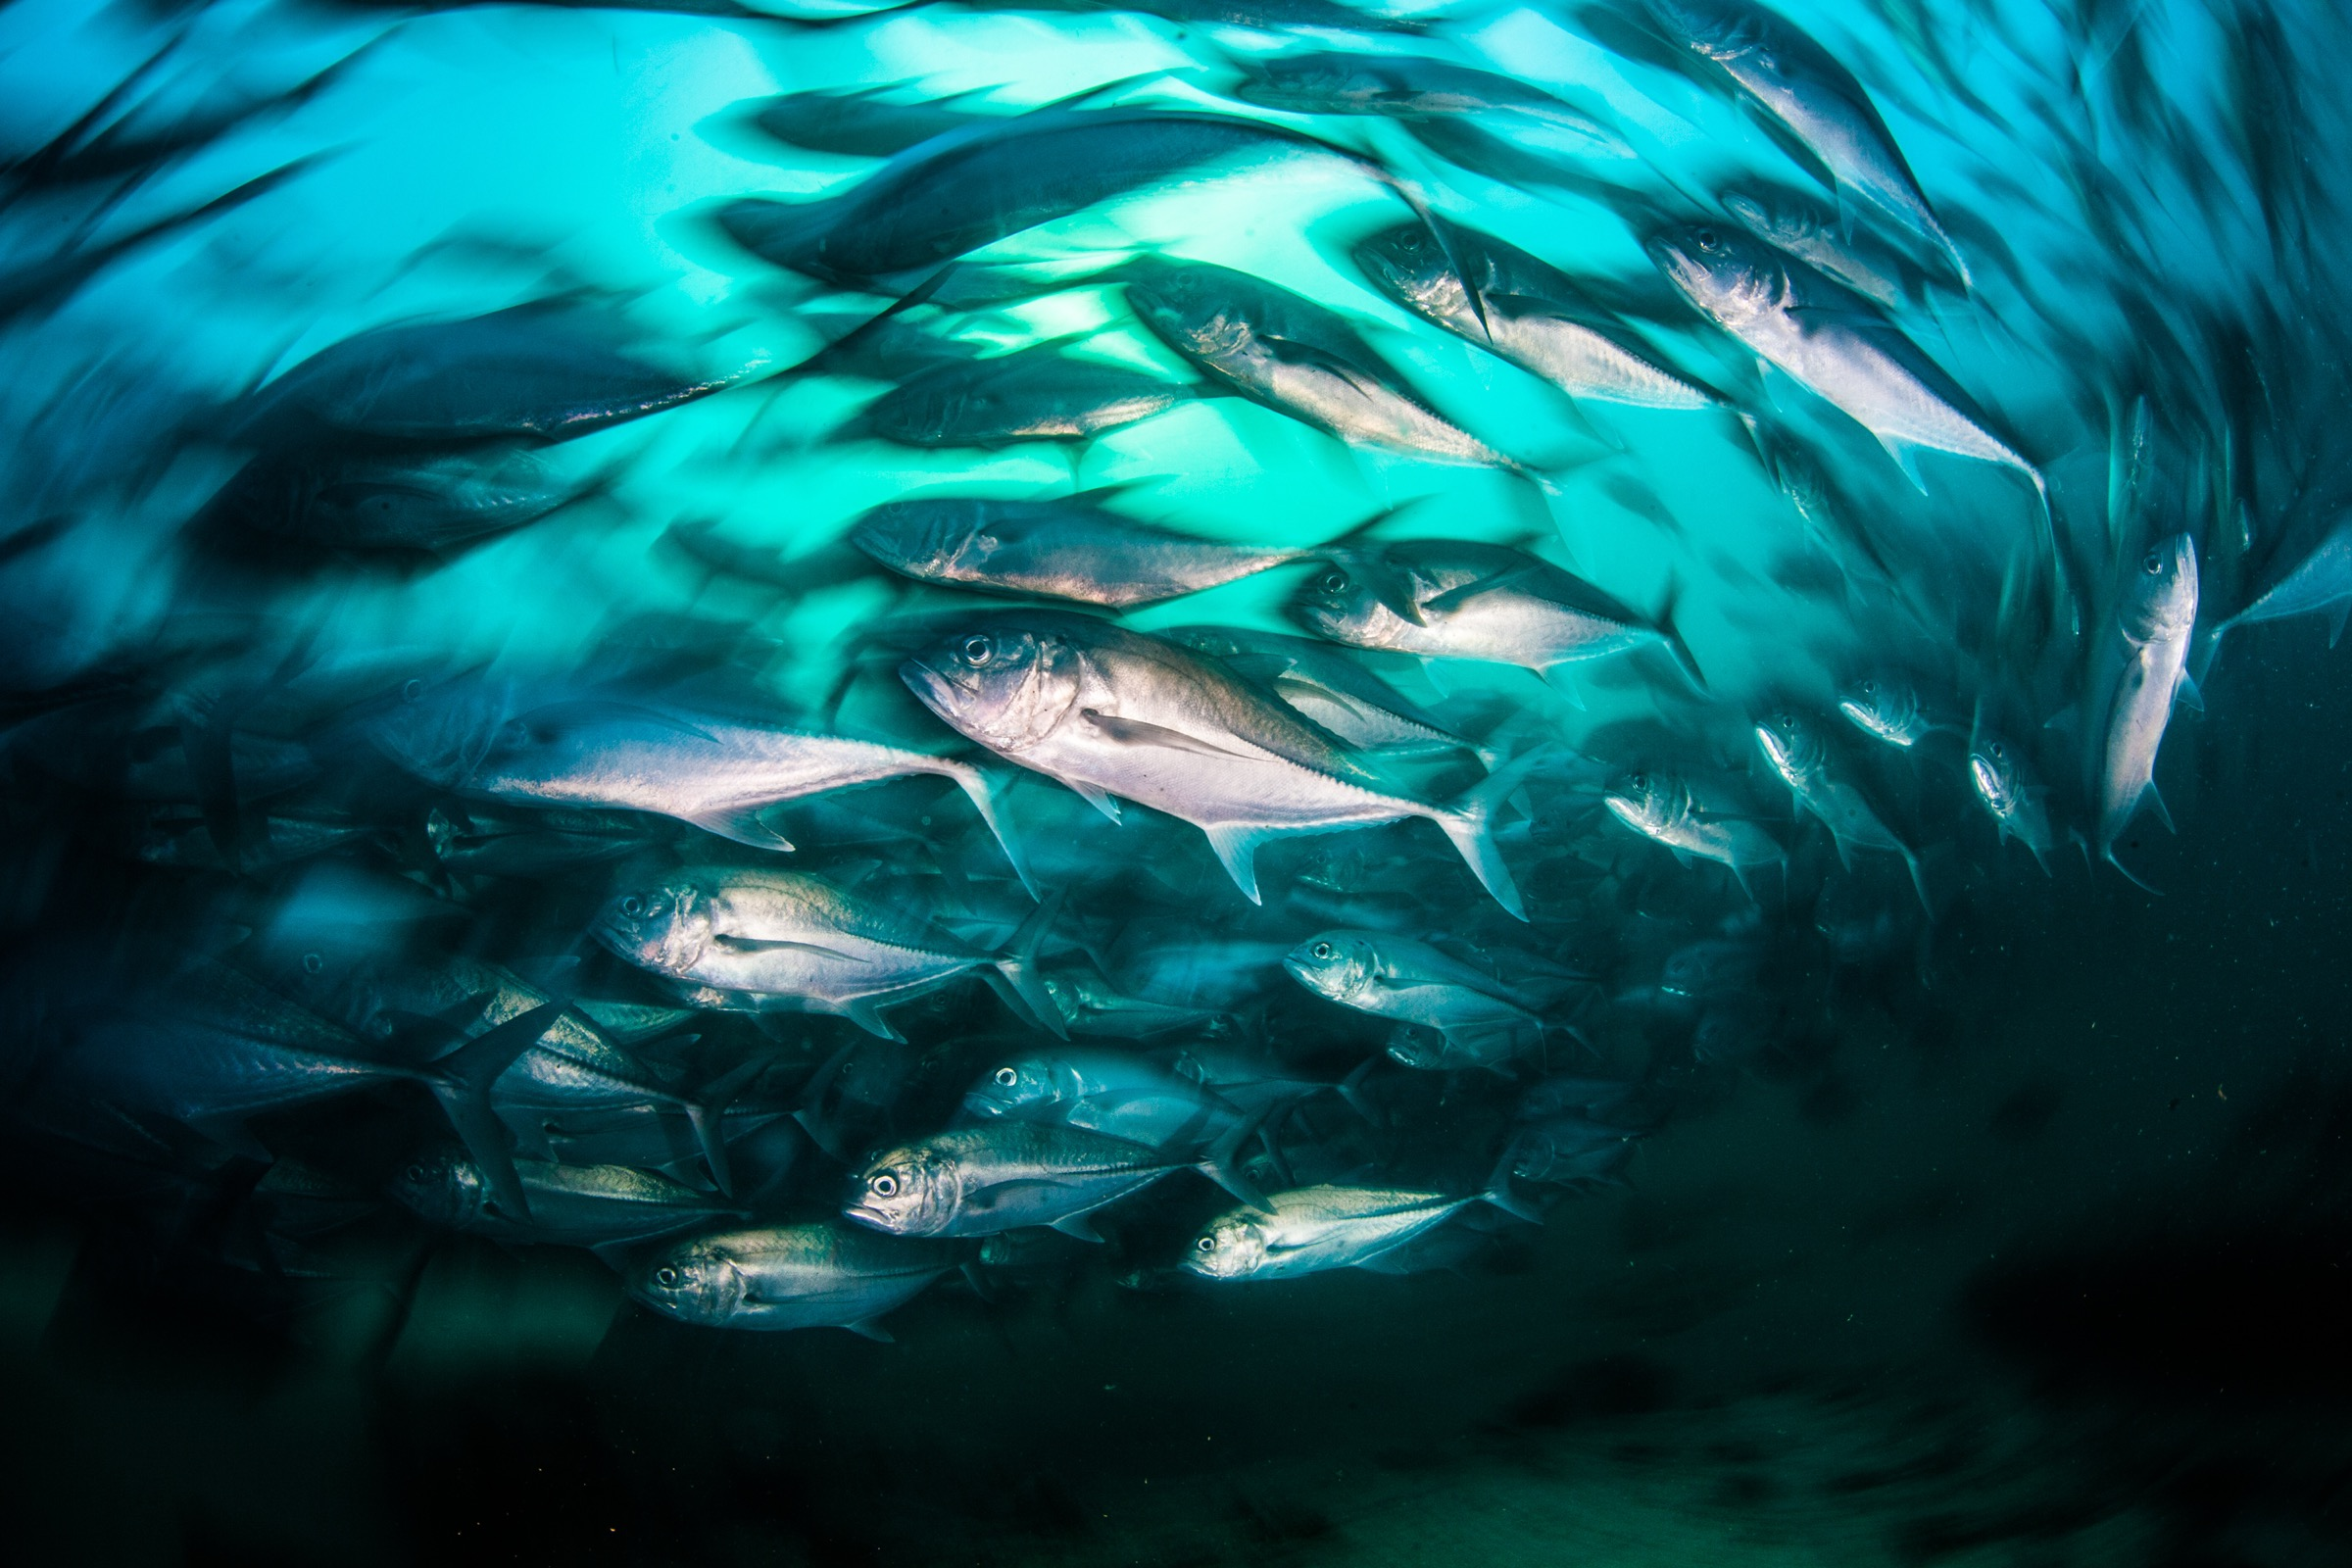 A school of bigeye trevally (Caranx sexfasciatus) swims off Cabo Pulmo, Baja California Sur, Mexico.